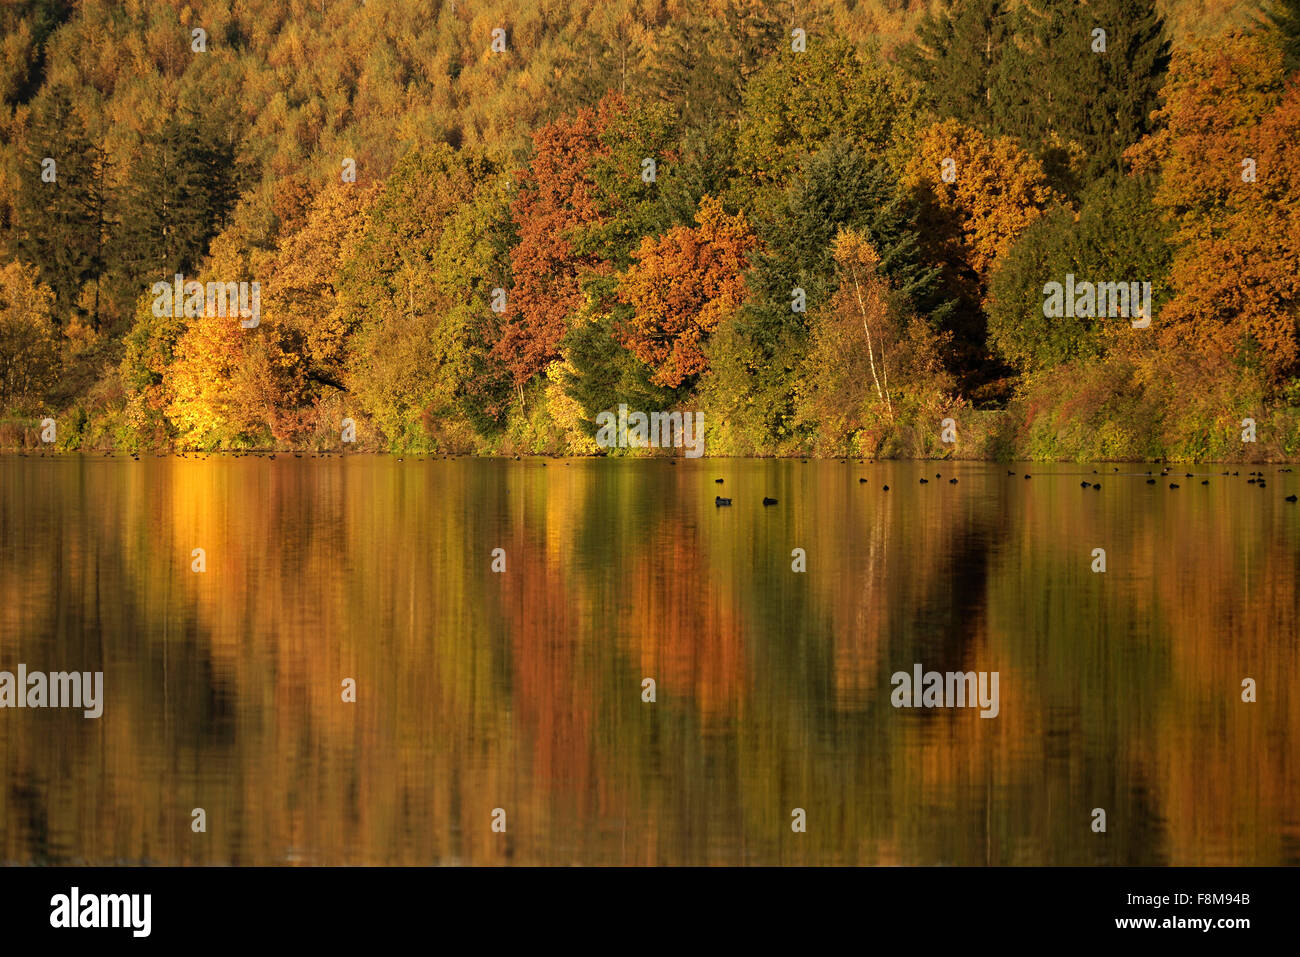 Colourful deciduous forest in autumn, Lake Sorpesee, Langscheid, Sauerland, North Rhine-Westphalia, Germany, Europe Stock Photo